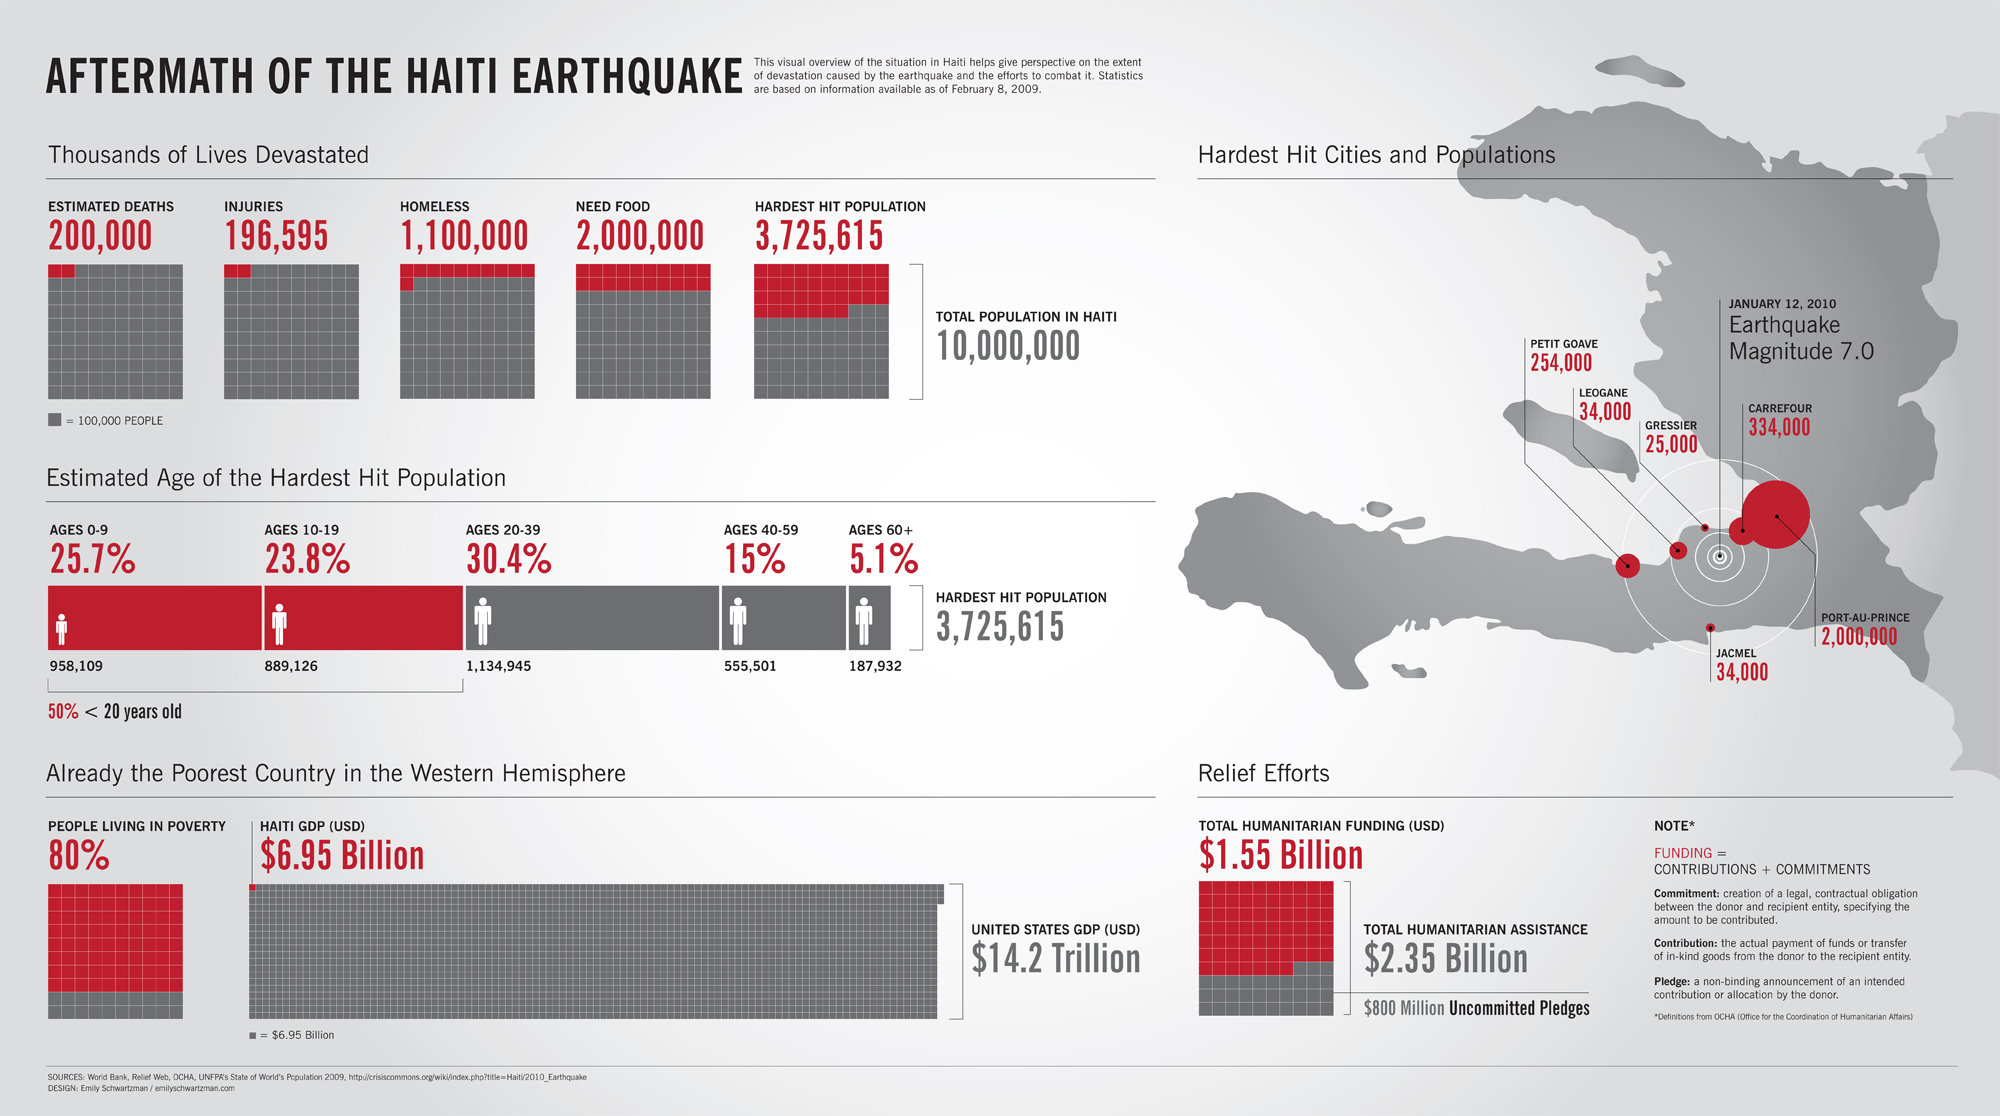 haiti earthquake 2010 effects and cost Six weeks after the haiti shock, chile was struck by an 88-magnitude earthquake it was 500 times more powerful than the haiti quake, yet killed less than 1% of the haitian total.